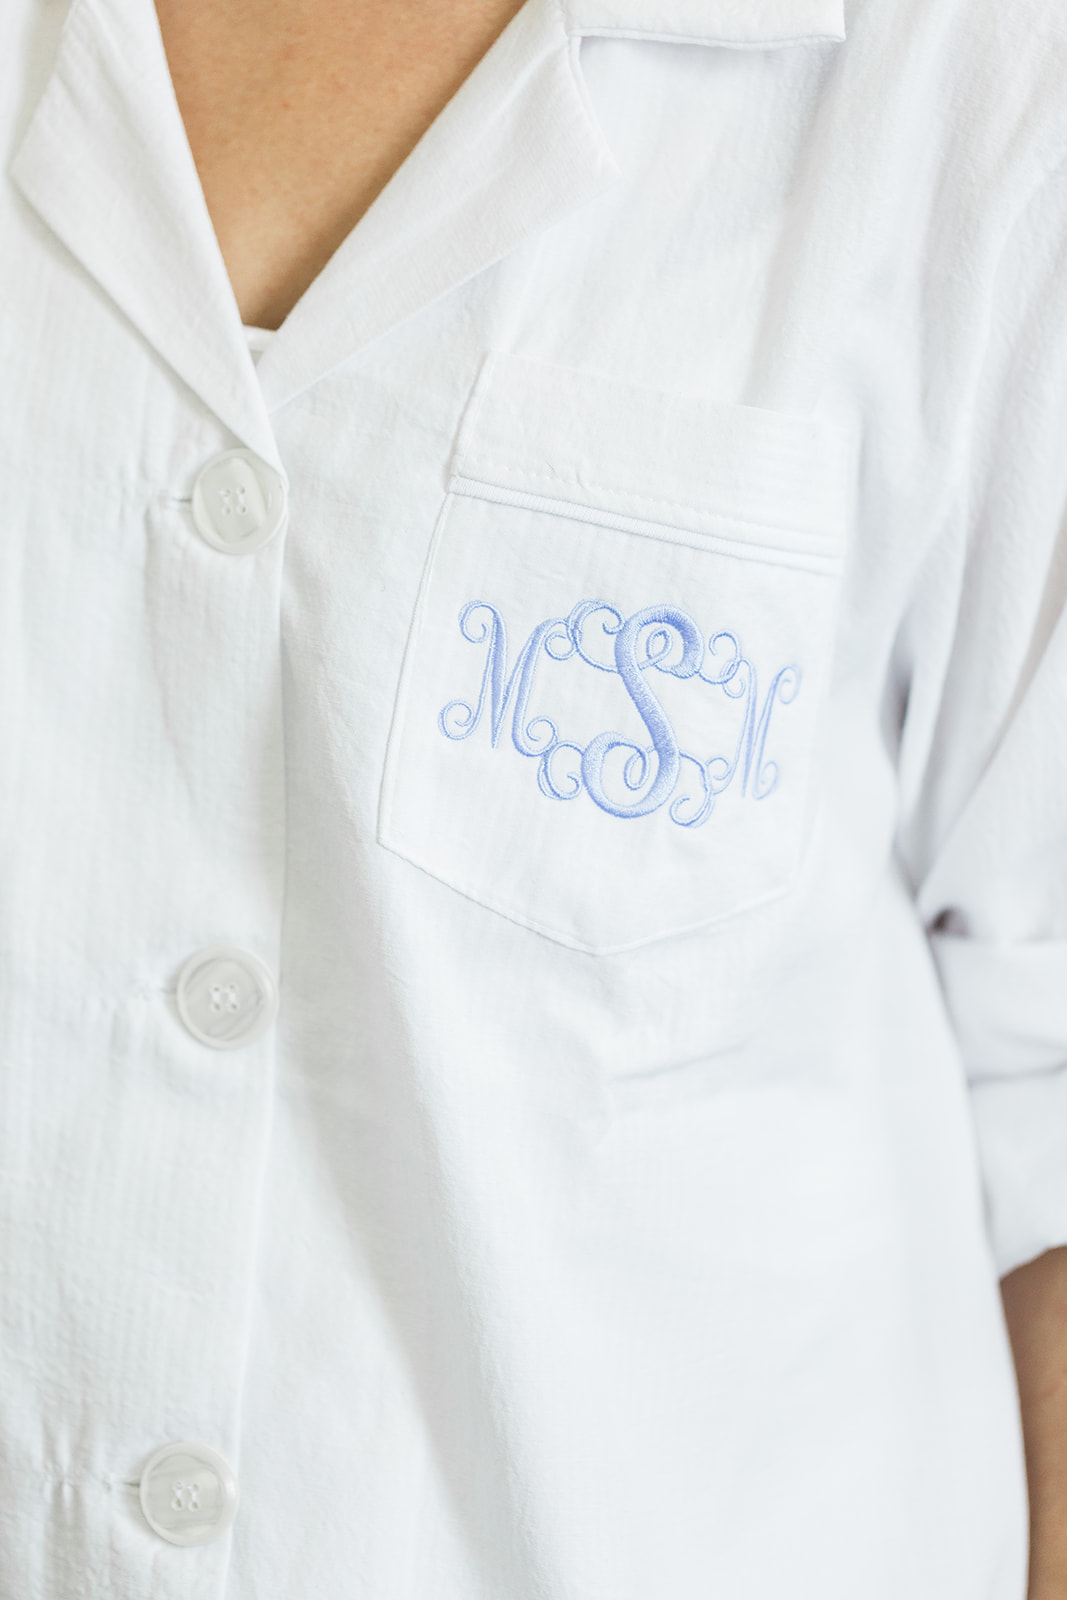 Bride's monogrammed shirt as she gets ready for Pittsburgh wedding at PNC Park planned by Exhale Events. Find more wedding inspiration at exhale-events.com!